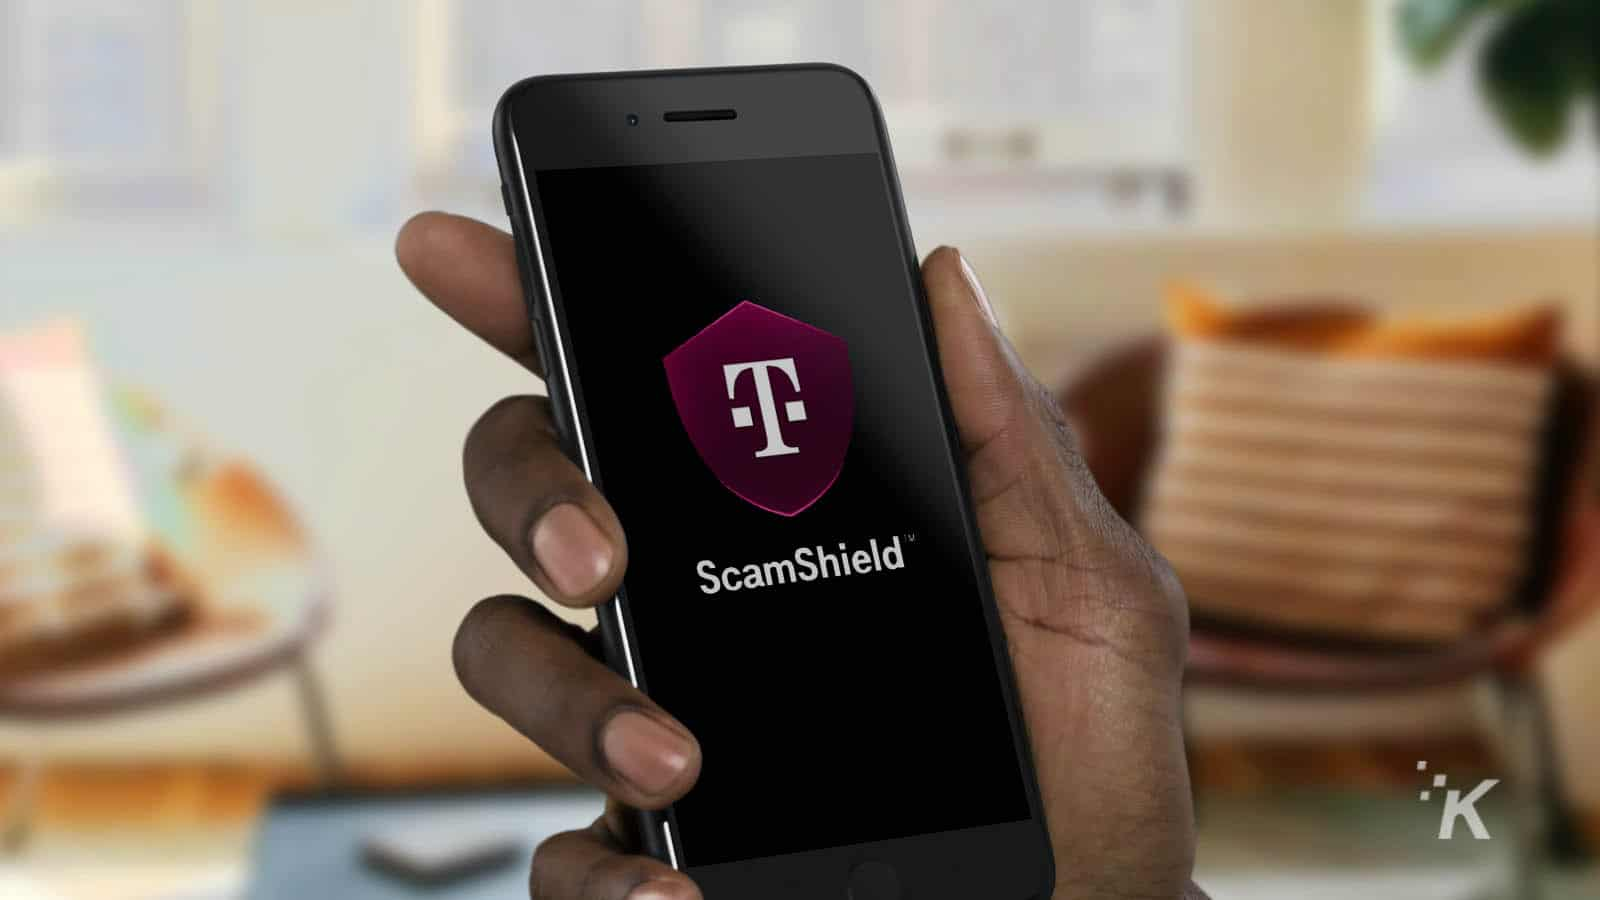 t-mobile scam shield app for robocallers